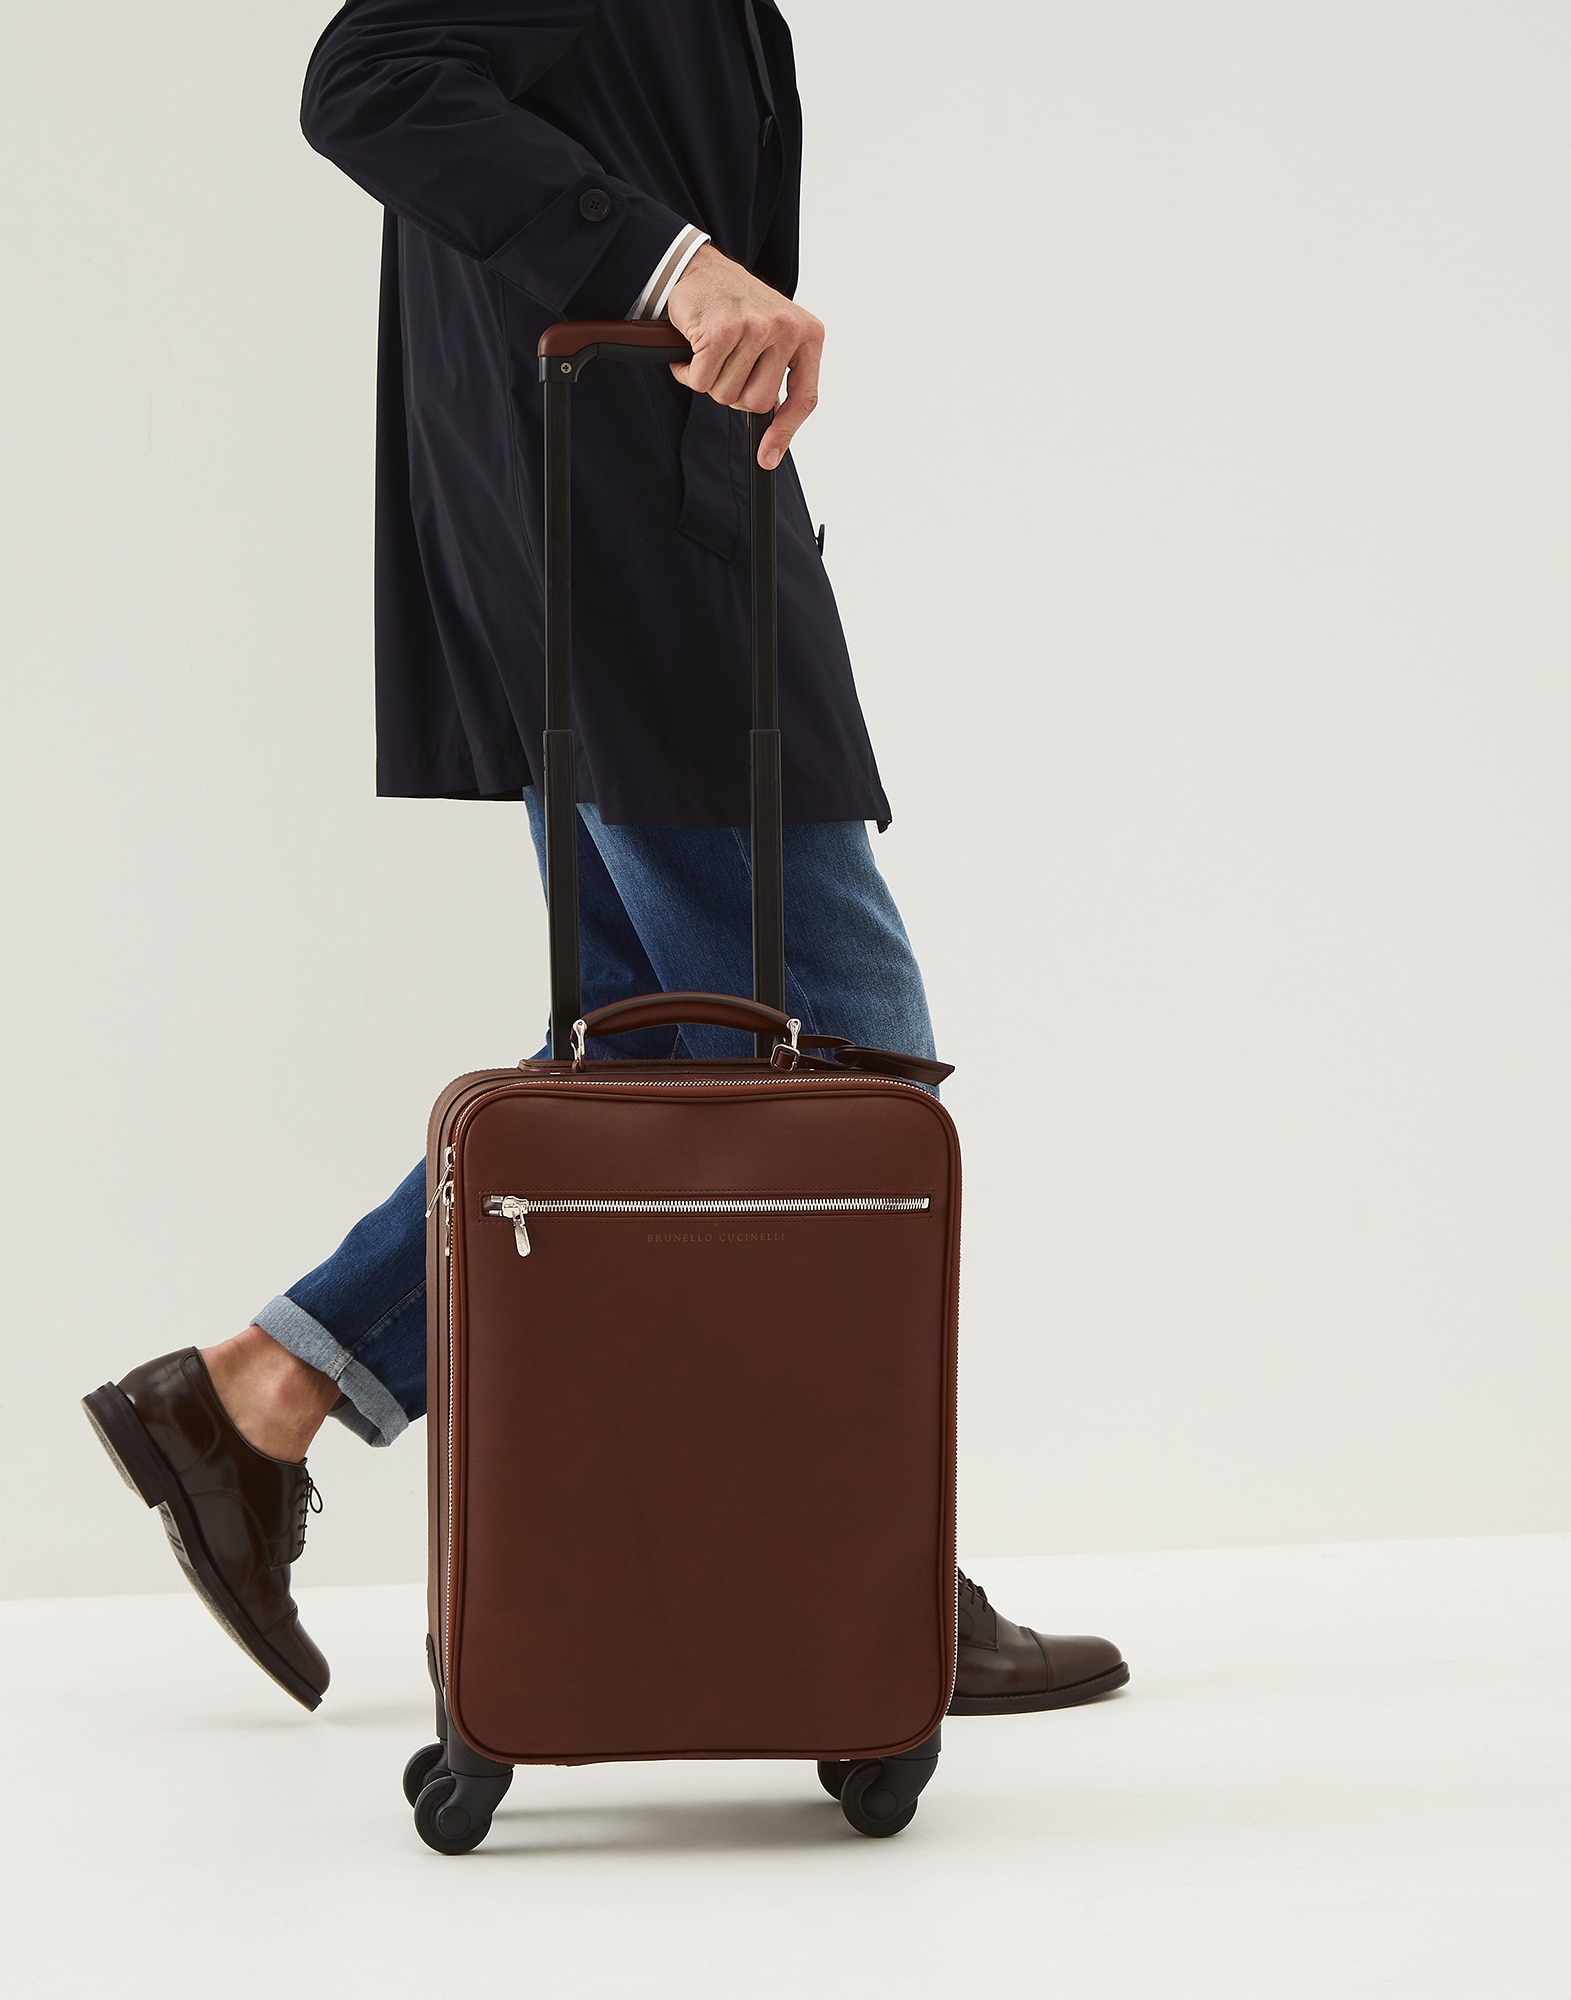 Wheeled Luggage - Editorial